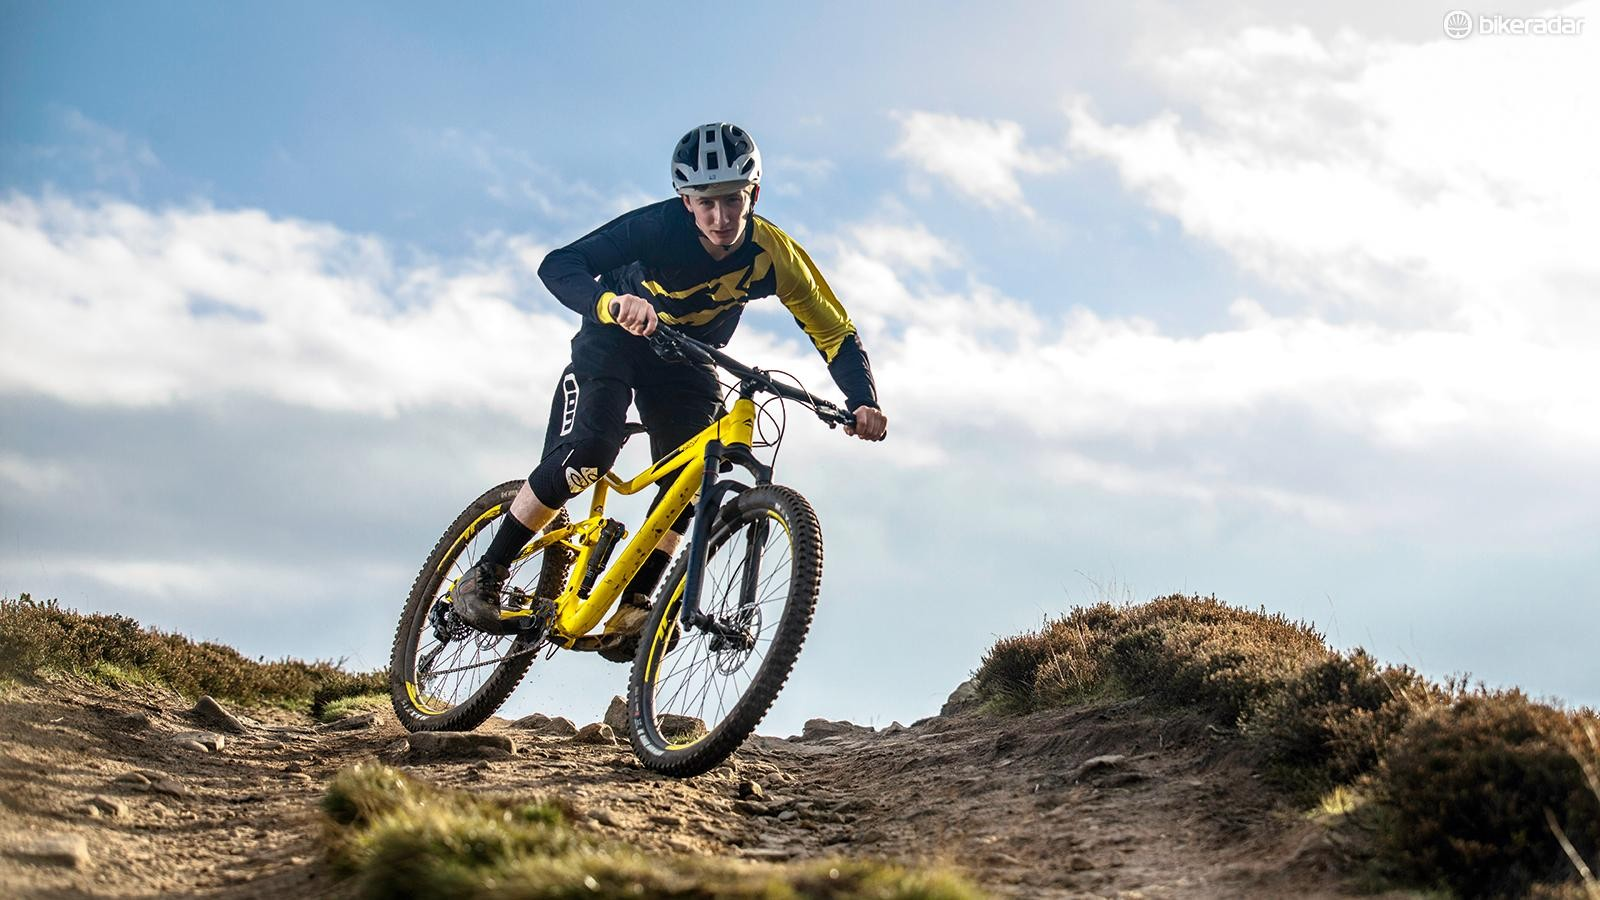 The One-Forty proves its value where it matters most — on the rowdiest gravity-assisted or self-propelled trails you can find